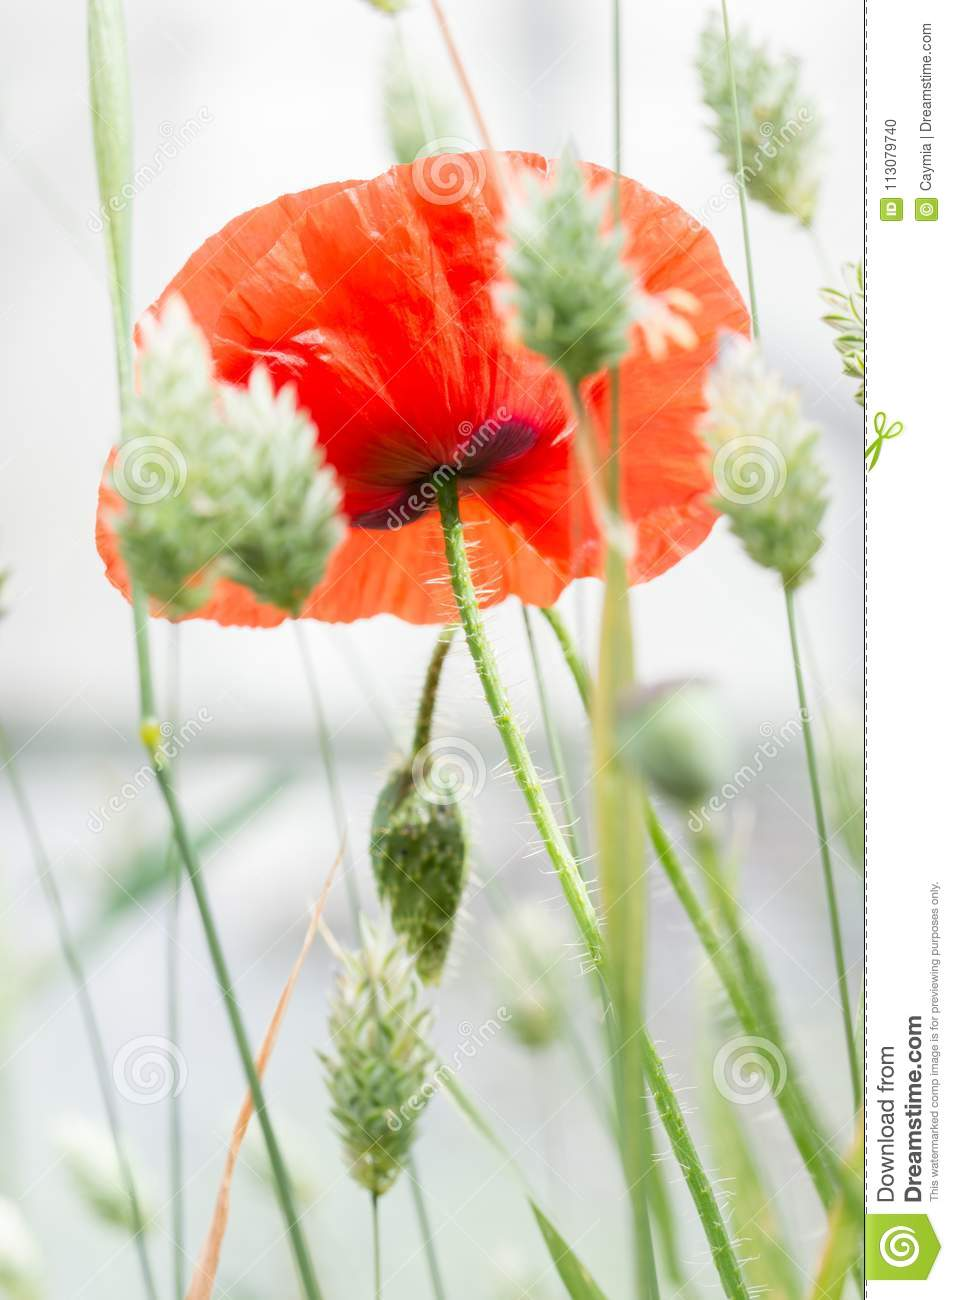 Flanders Poppy Flower Papaver Rhoeas And Canary Grass Vertical